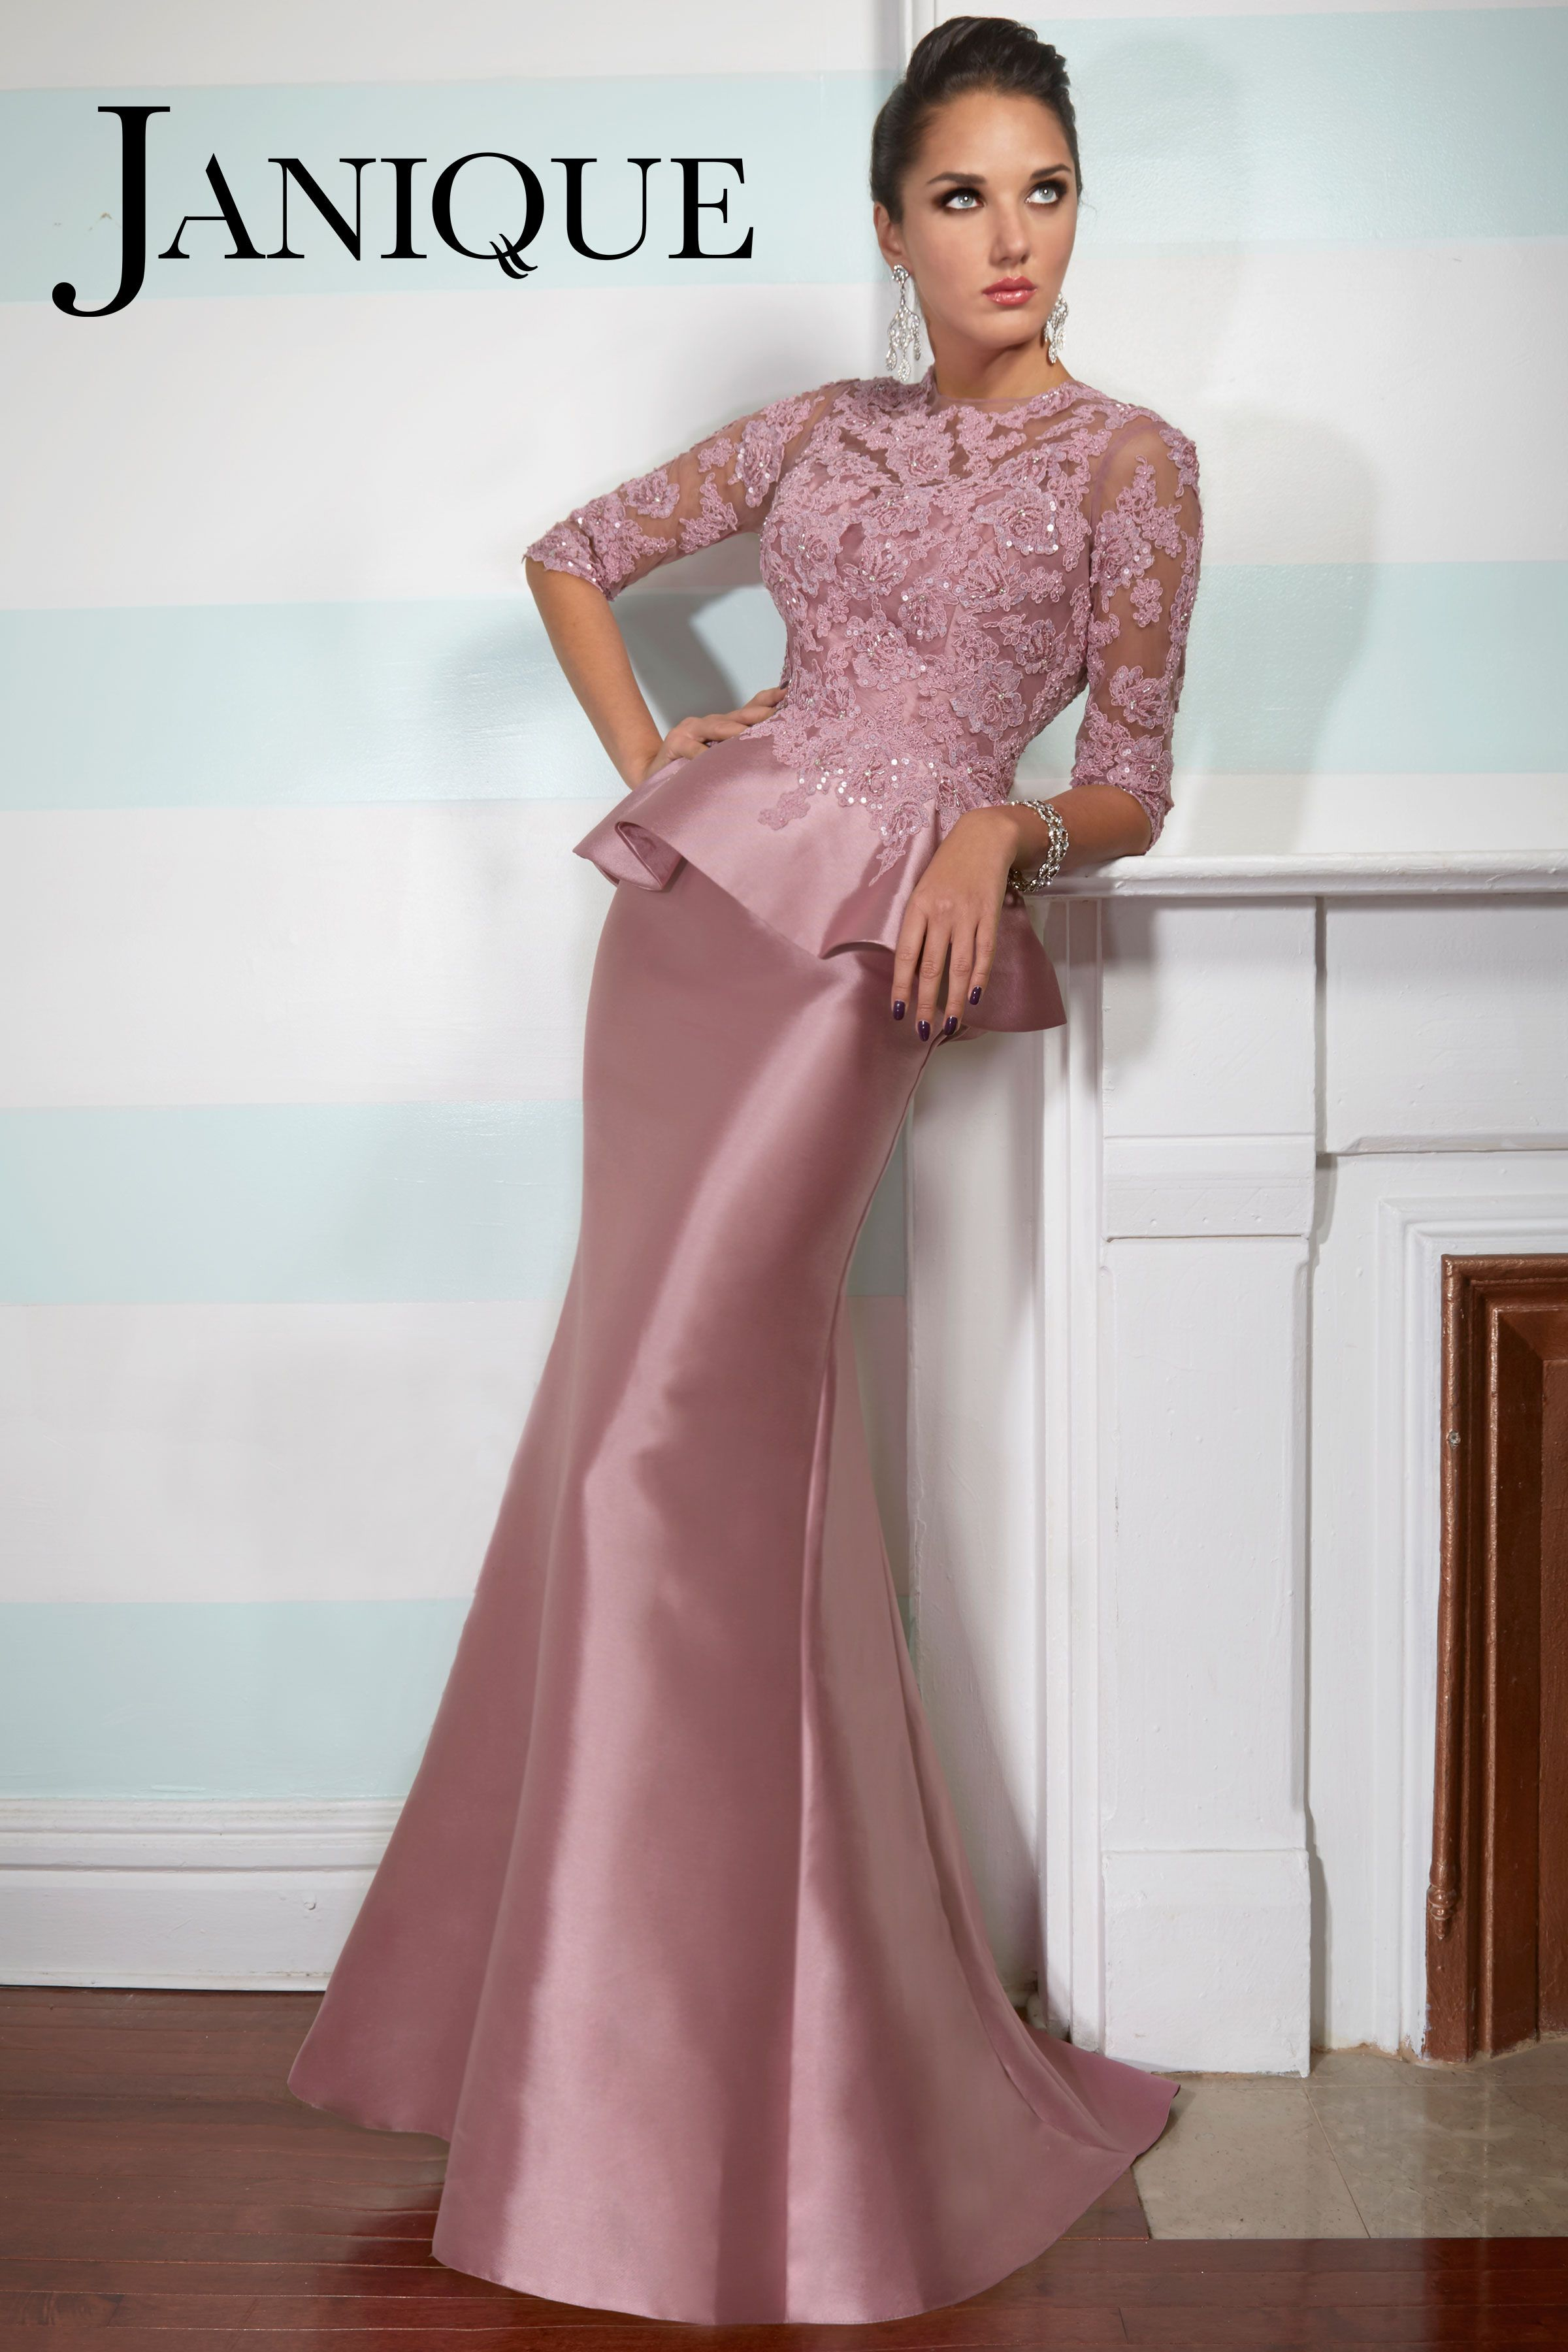 e4ea349f8d35 Janique 510 2015 Collection. Sparkle and glow in Janique 510. This fabulous  evening gown features a round neckline with three quarter length sleeves.